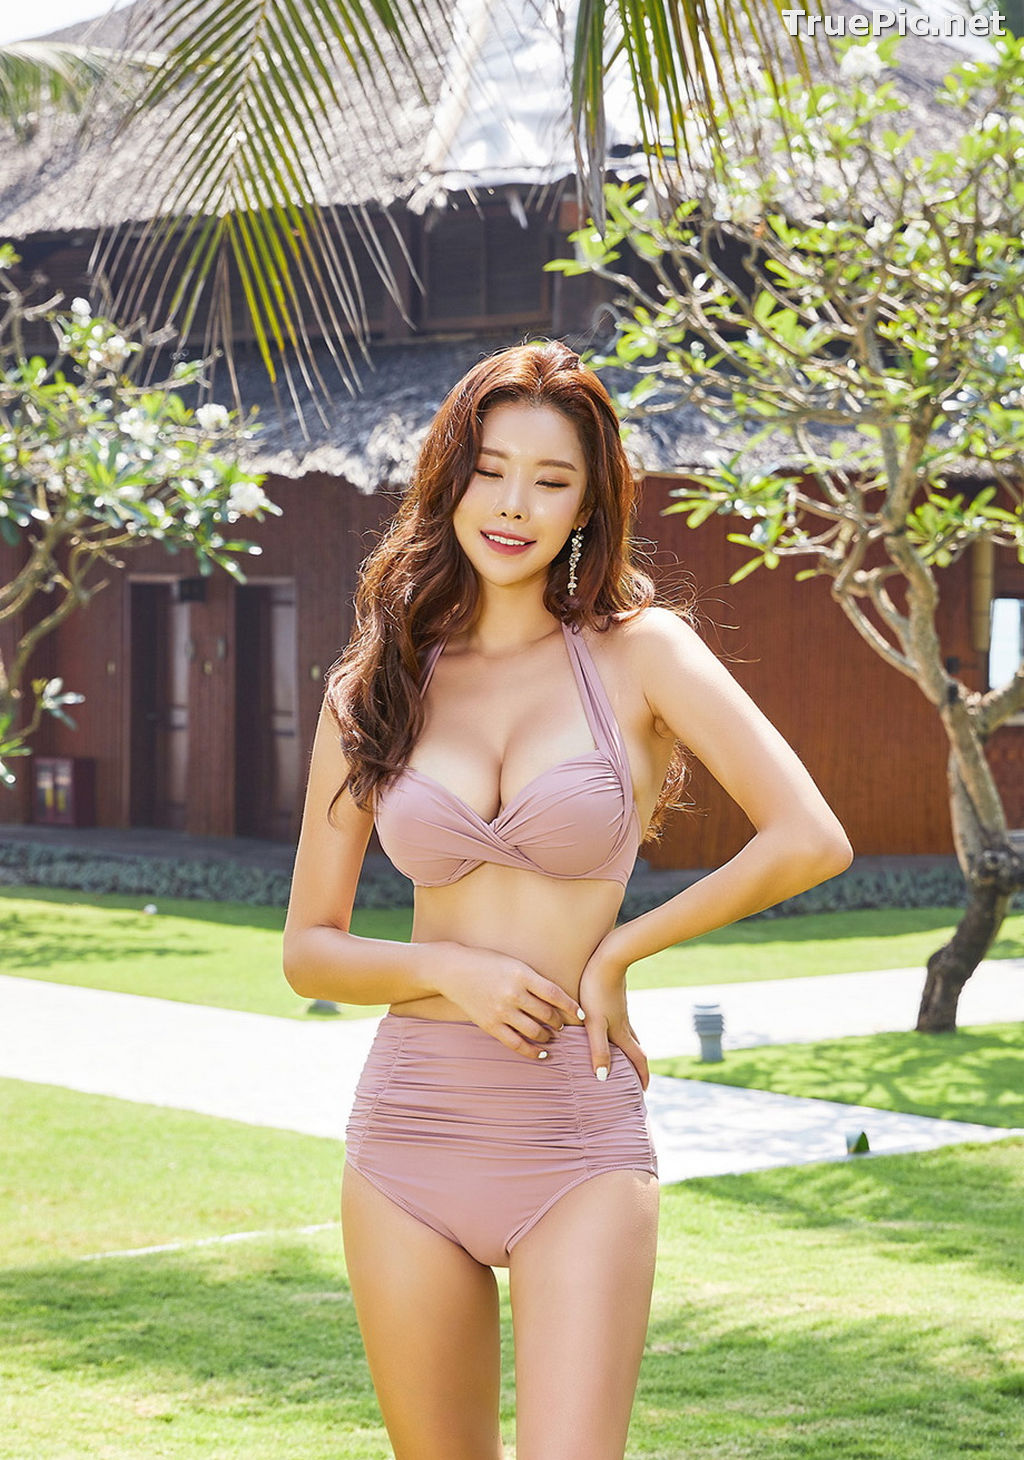 Image Park Da Hyun - Korean Fashion Model - Rose Mellow Pale Pink Bikini - TruePic.net - Picture-8